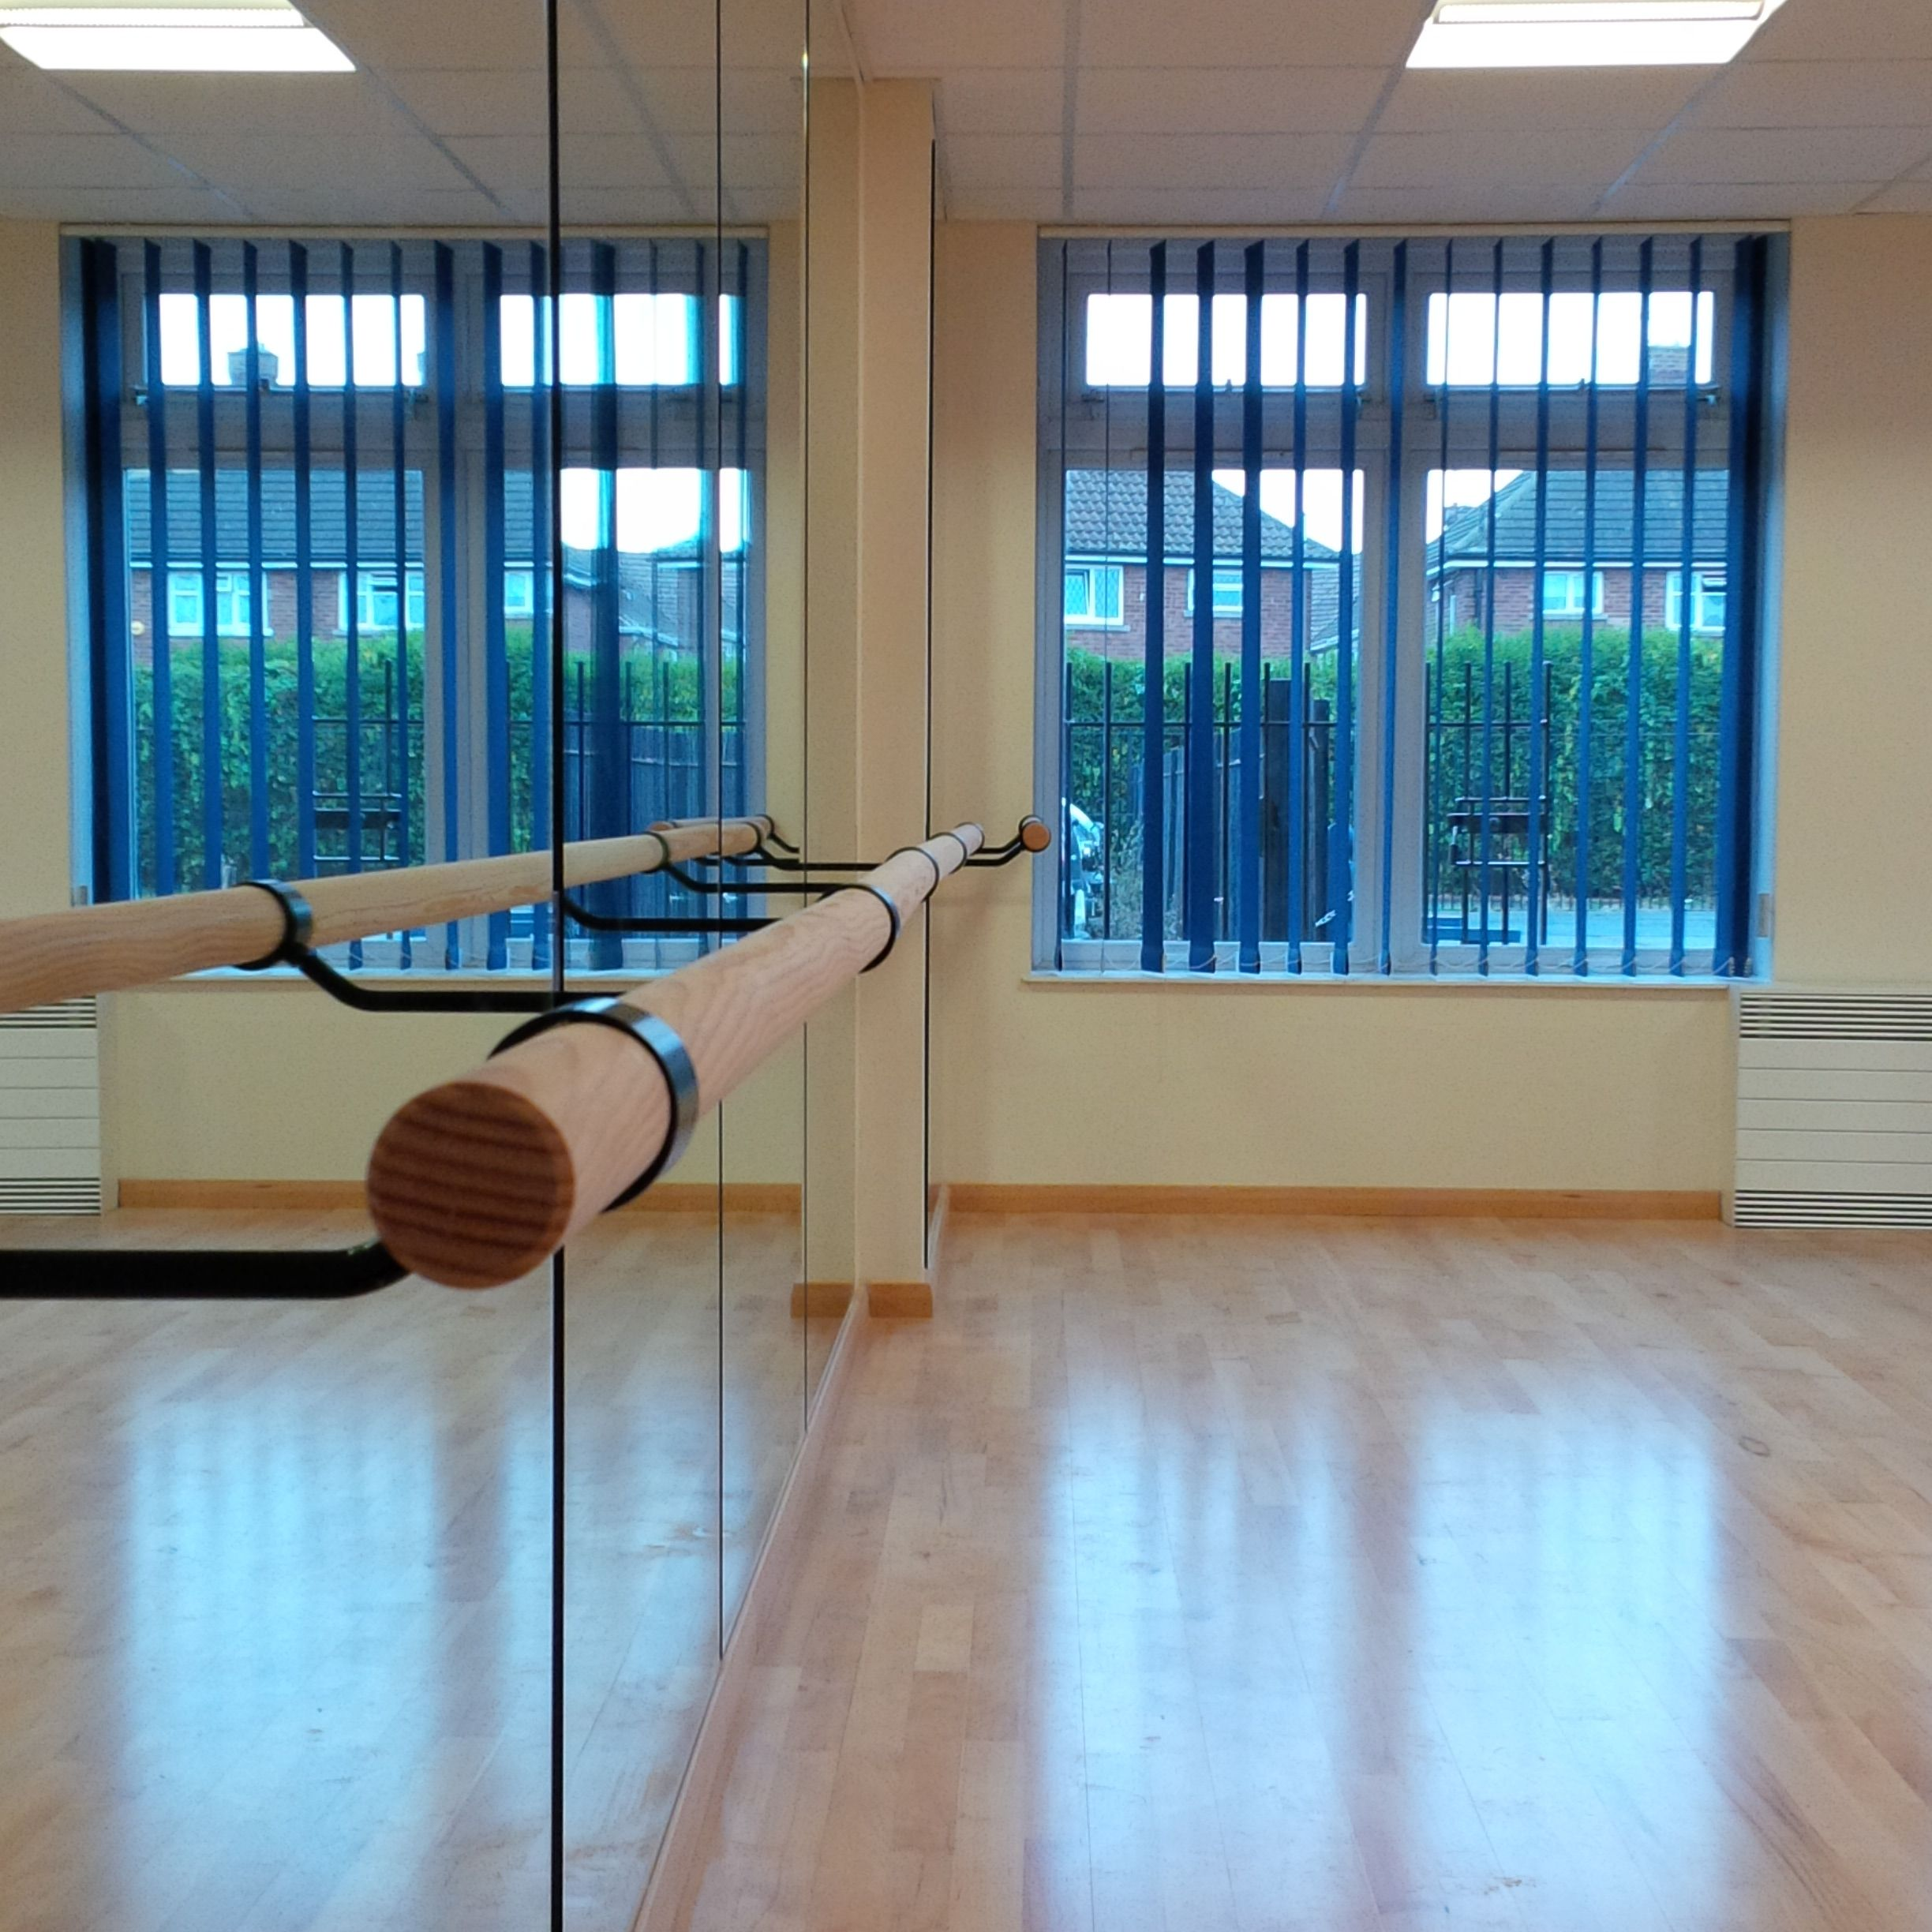 Single Ballet Barre Amp Studio Mirrors Installed At